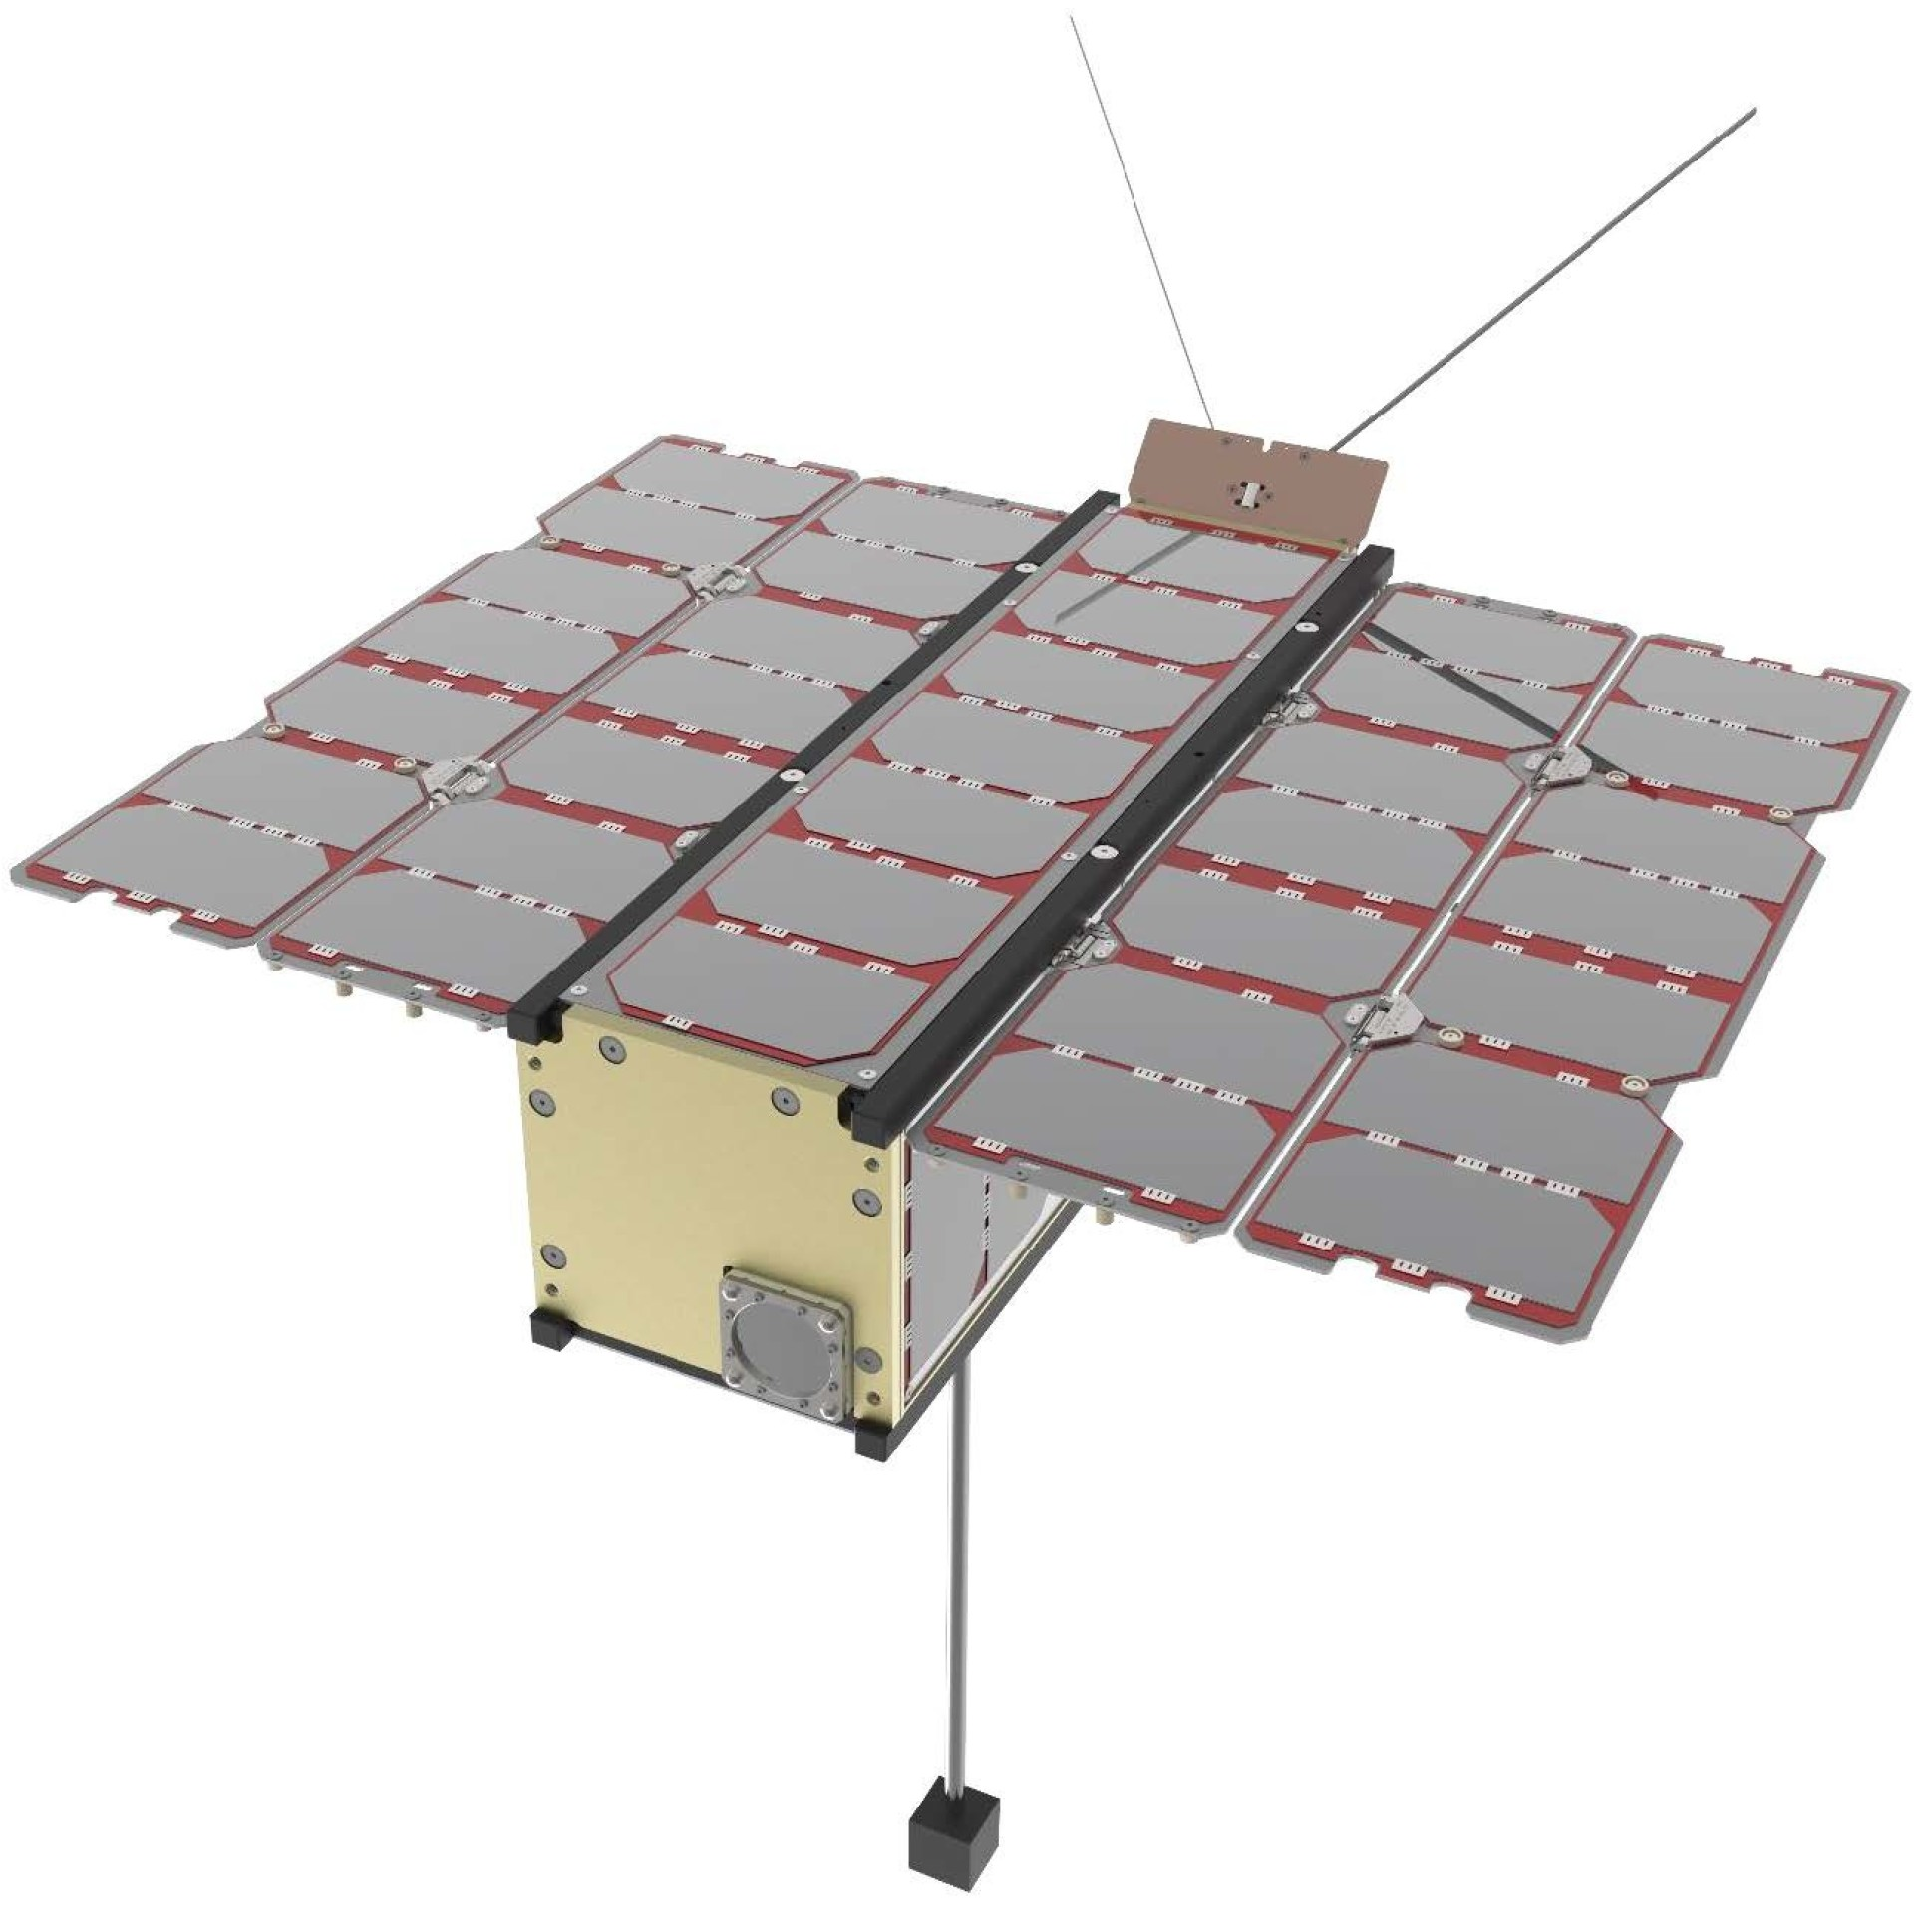 Illustration of a rectangular spacecraft with folded-out solar panels and a boom at the bottom